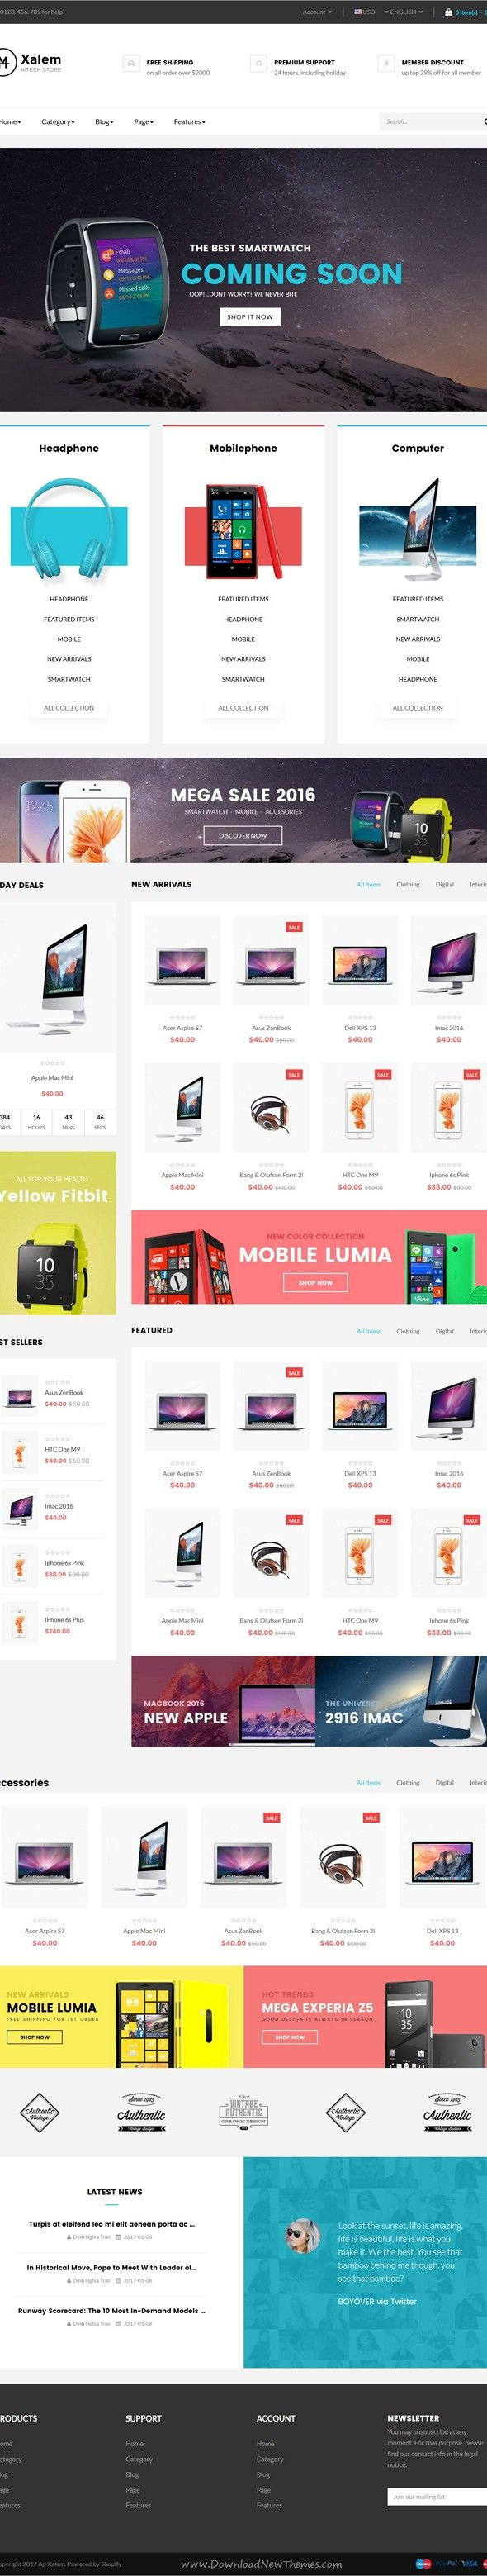 Ap Xalem Shopify Theme  #electric, #headset, #iphone, #macbook, #mobile, #shopify, #technology, #television, #template, #theme, #ecommerce, #shopify, …